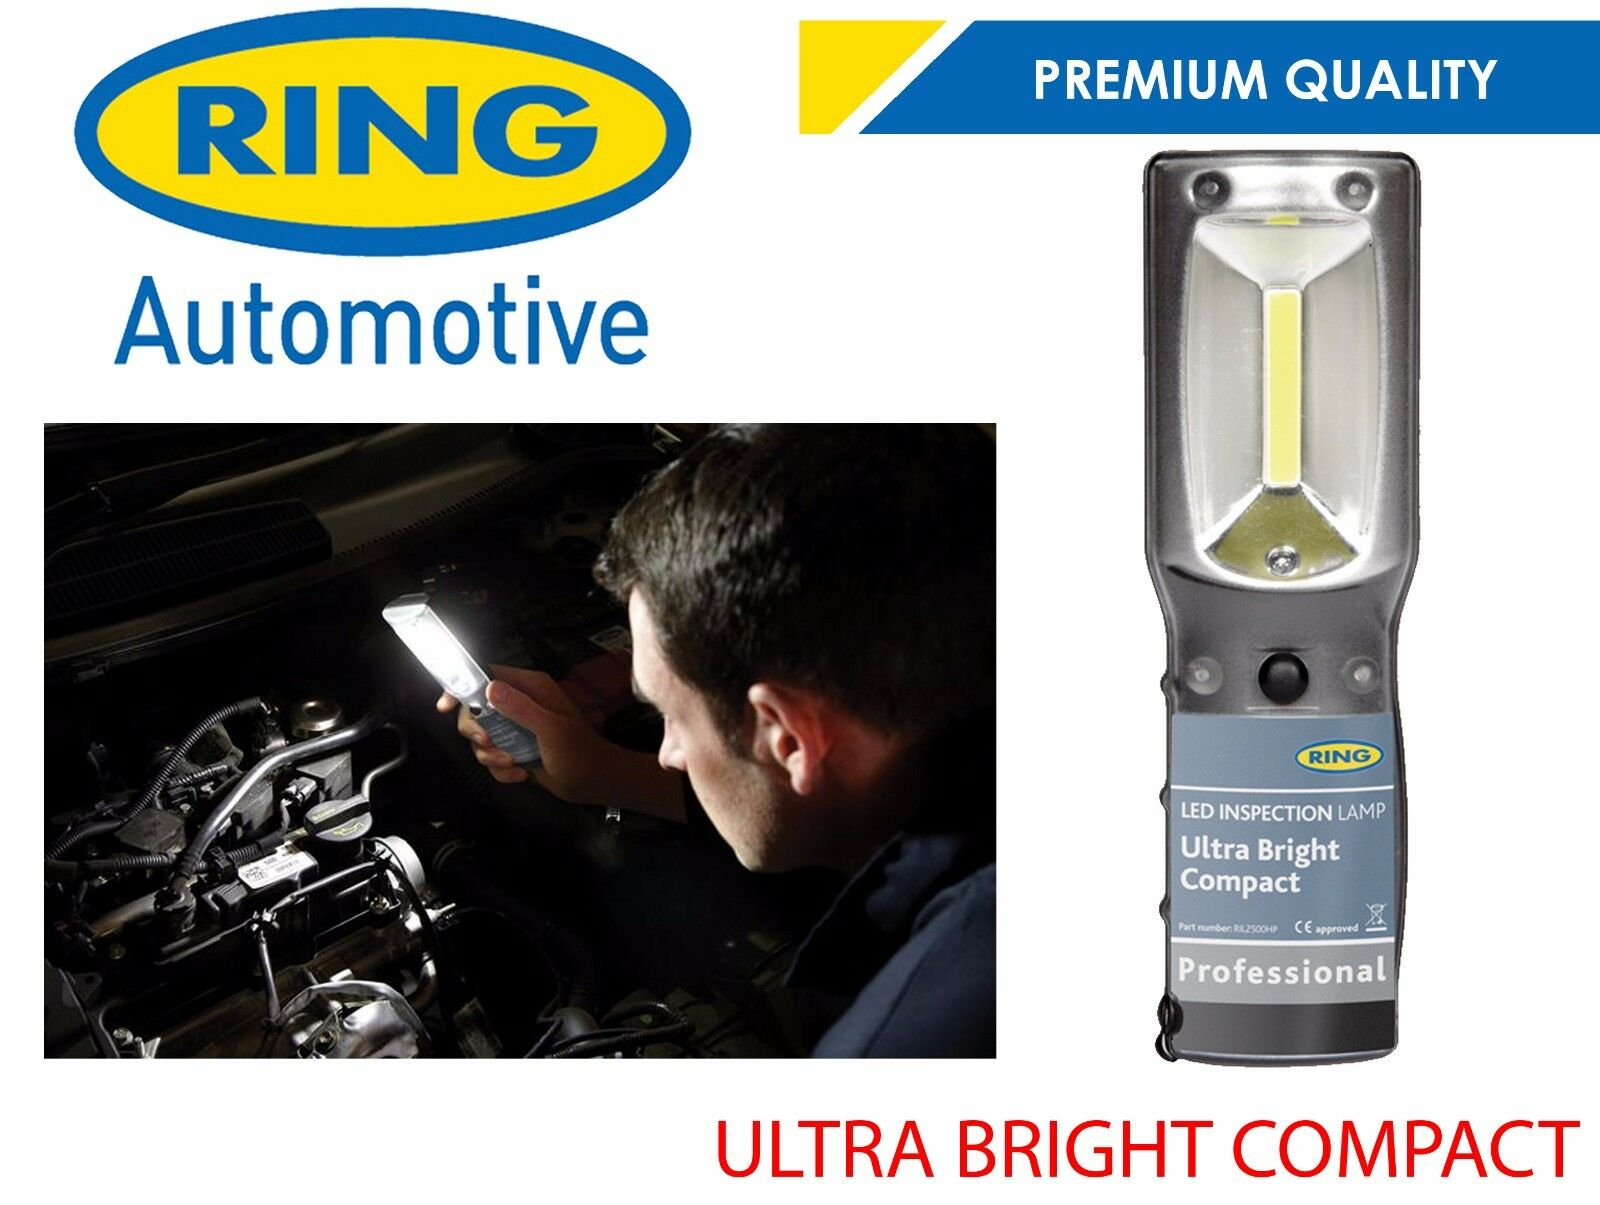 Ring Compact Heavy Duty Ultra Bright LED Inspection Lamp RIL2900